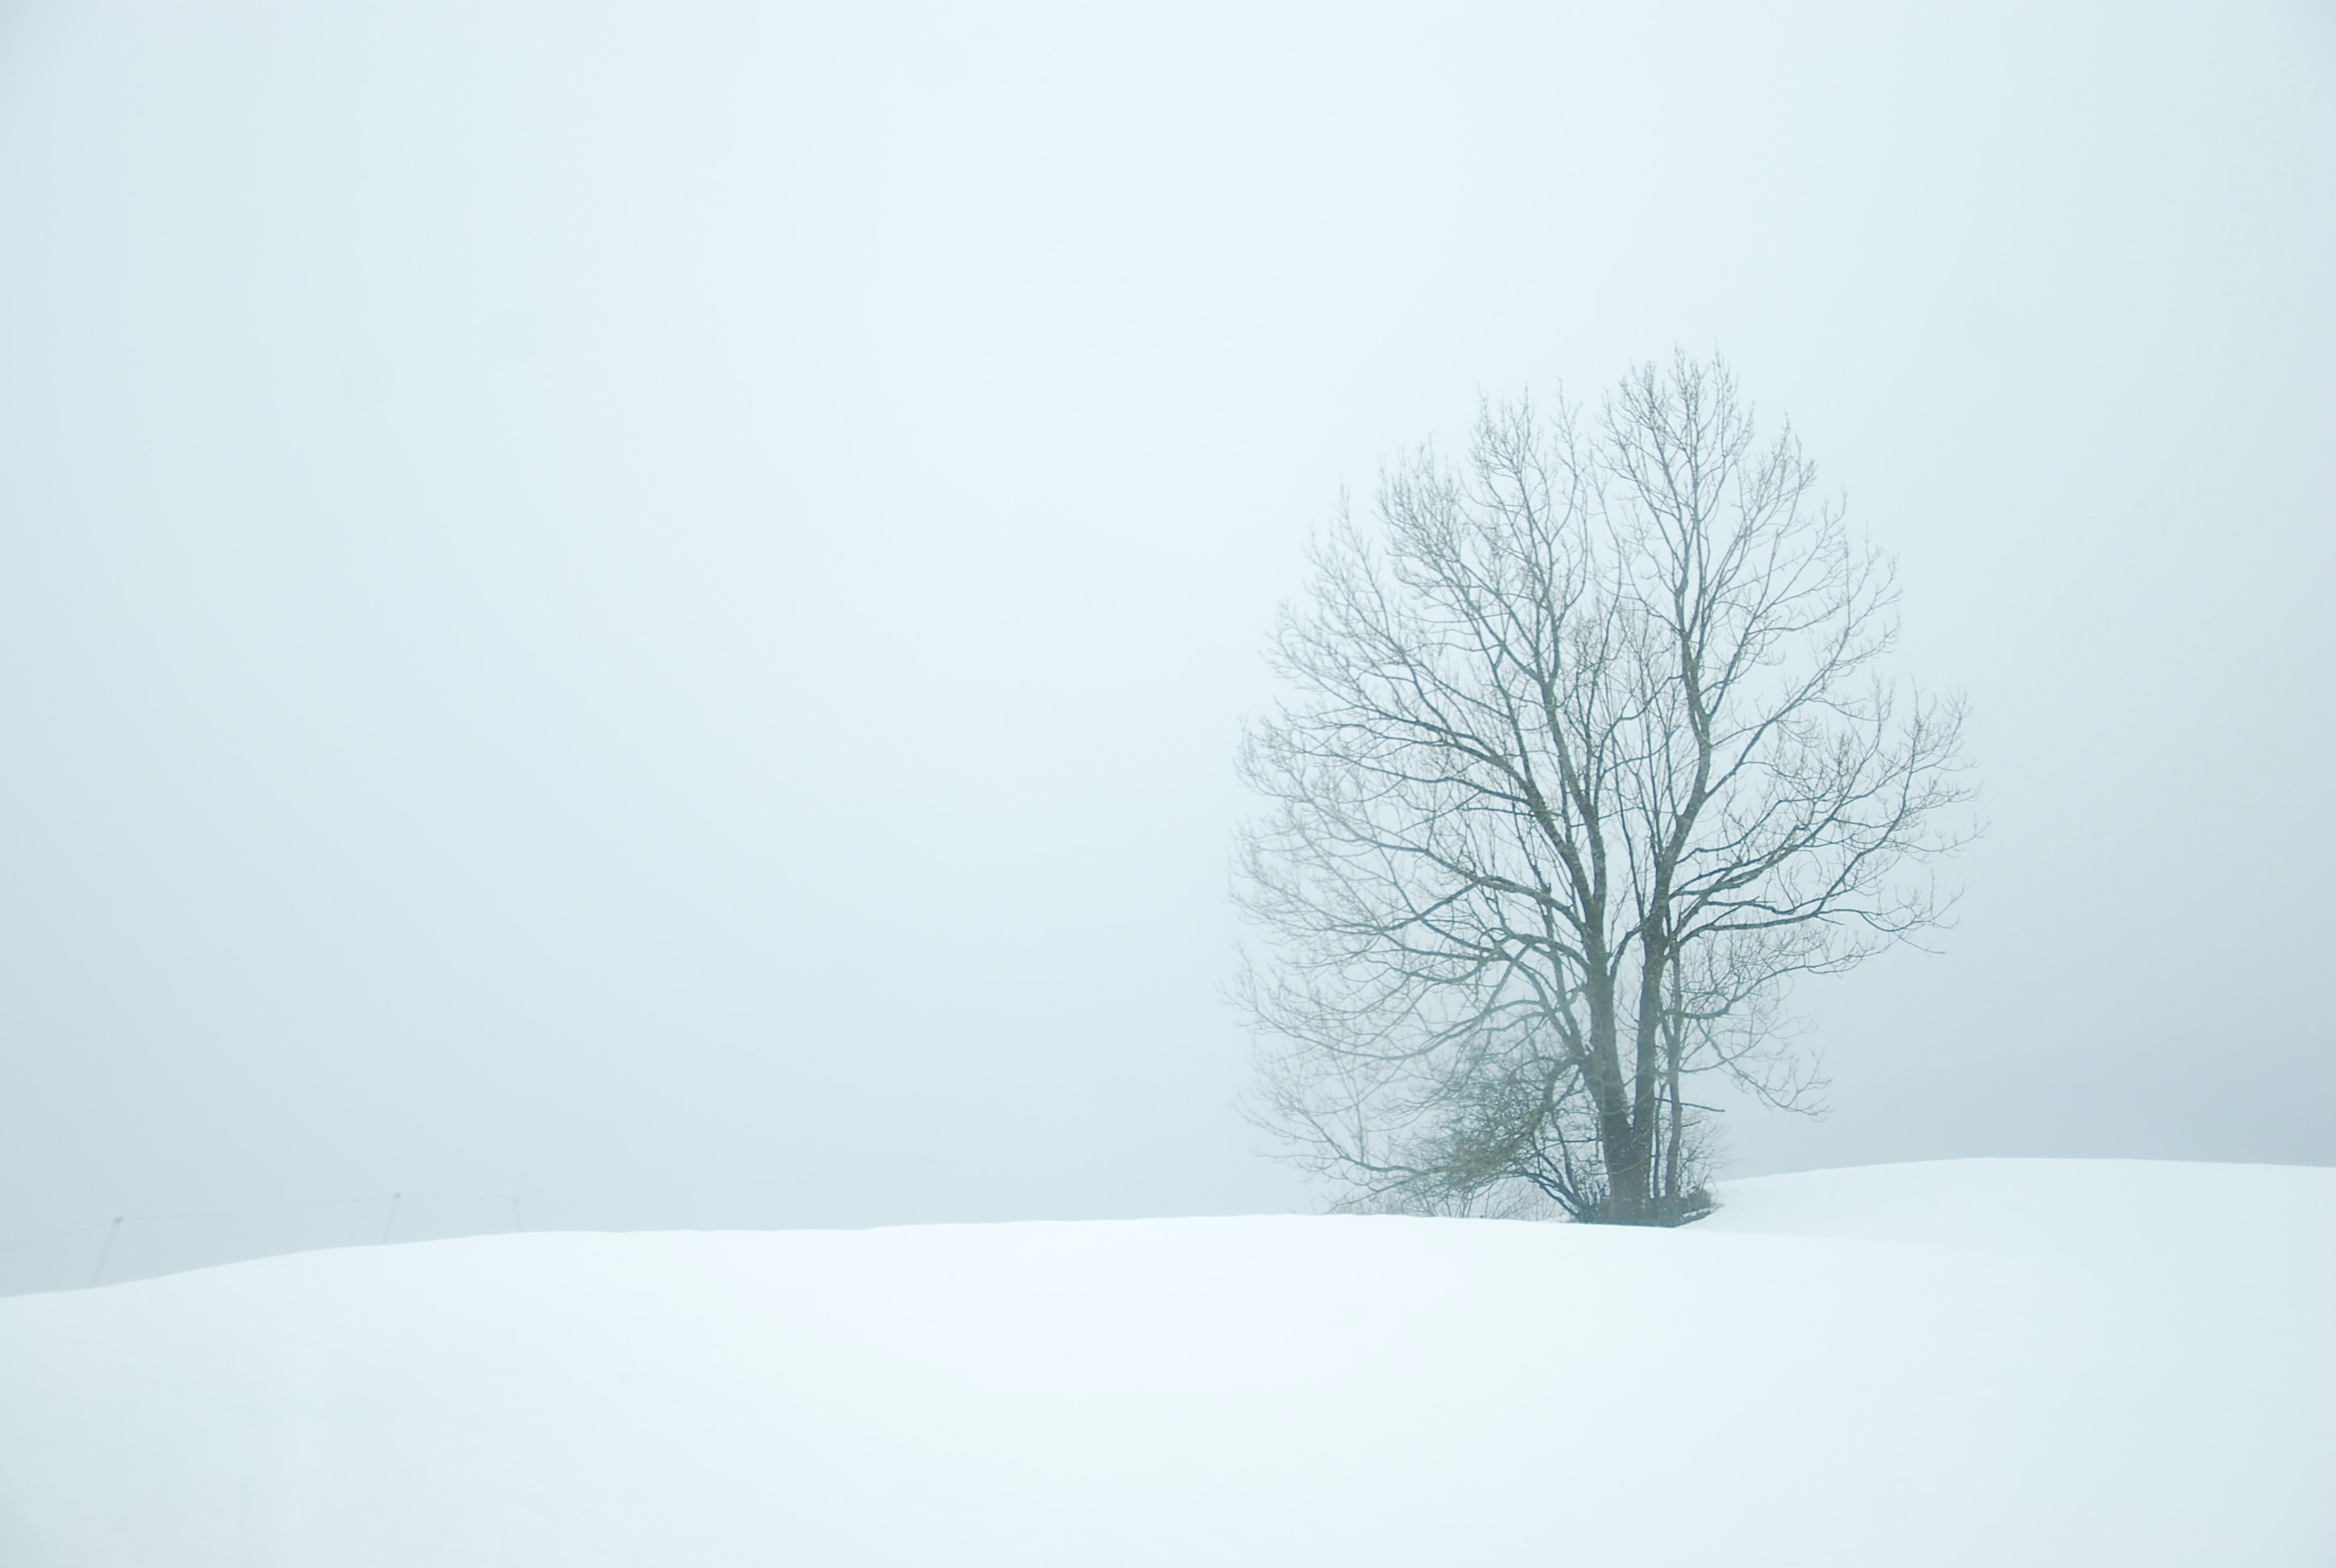 A tree in the snow on a foggy white winter day